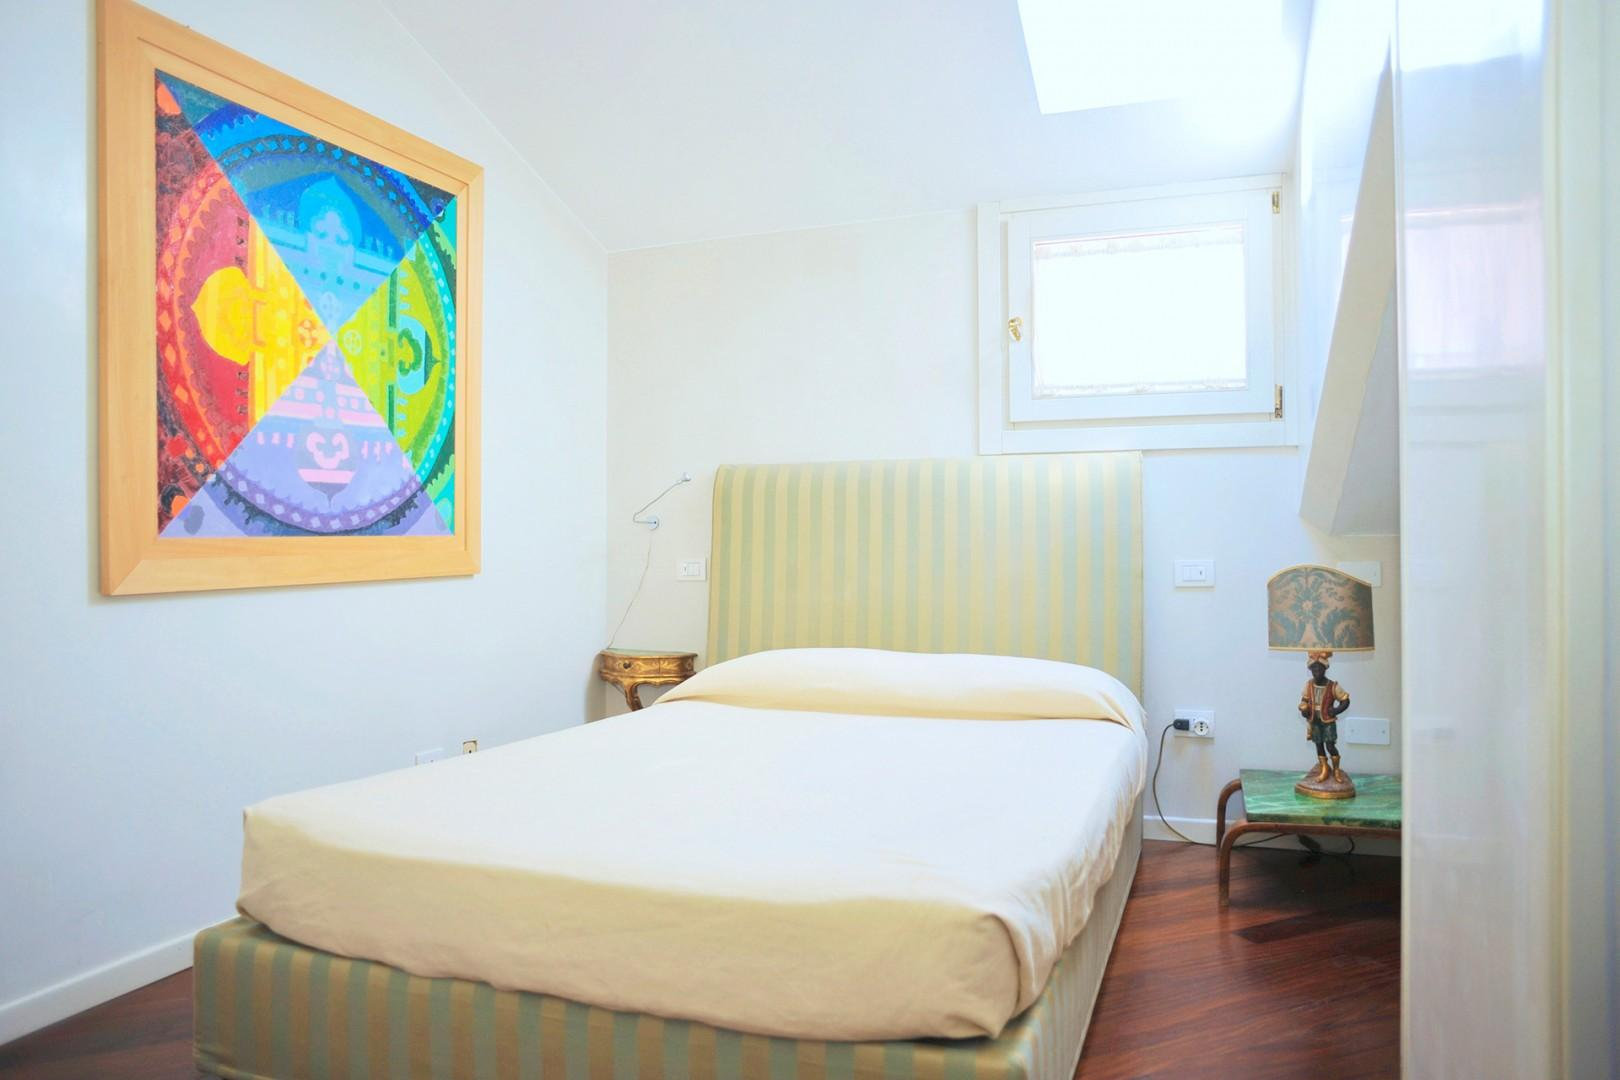 There is an alcove on the side of the bed with a low ceiling.